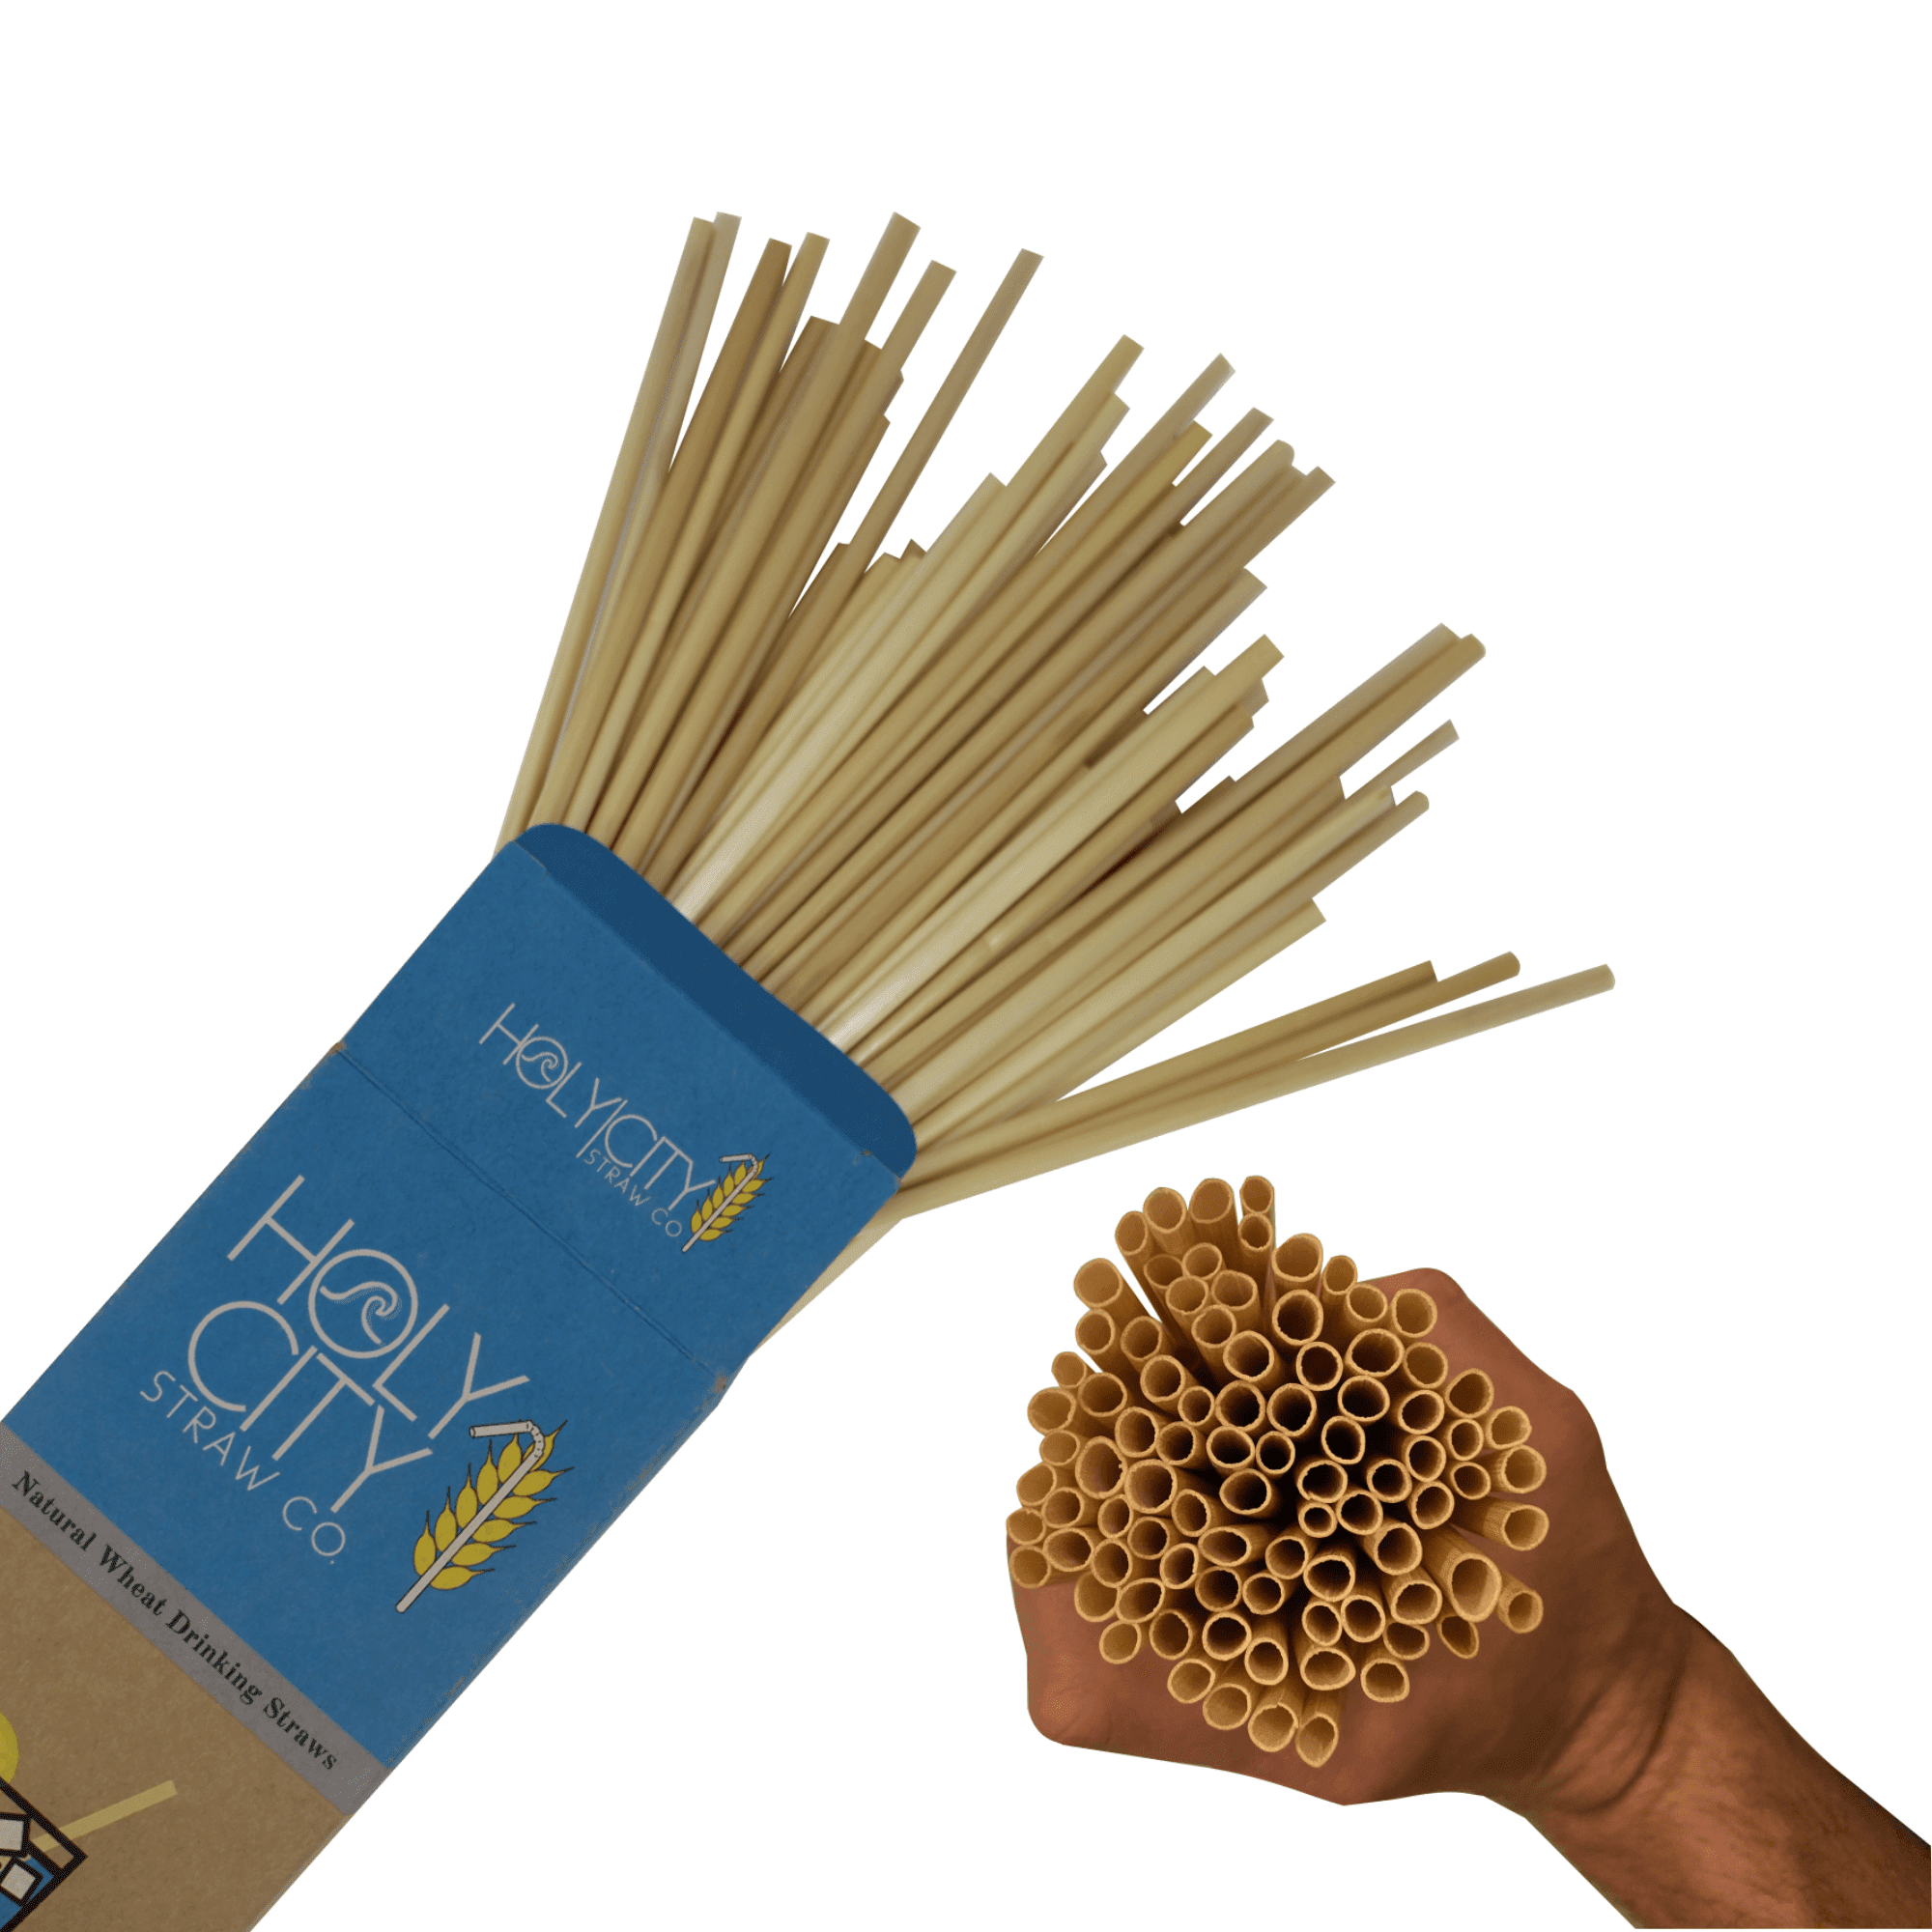 100 count box of Holy City Cocktail Straws with a fist full of straws